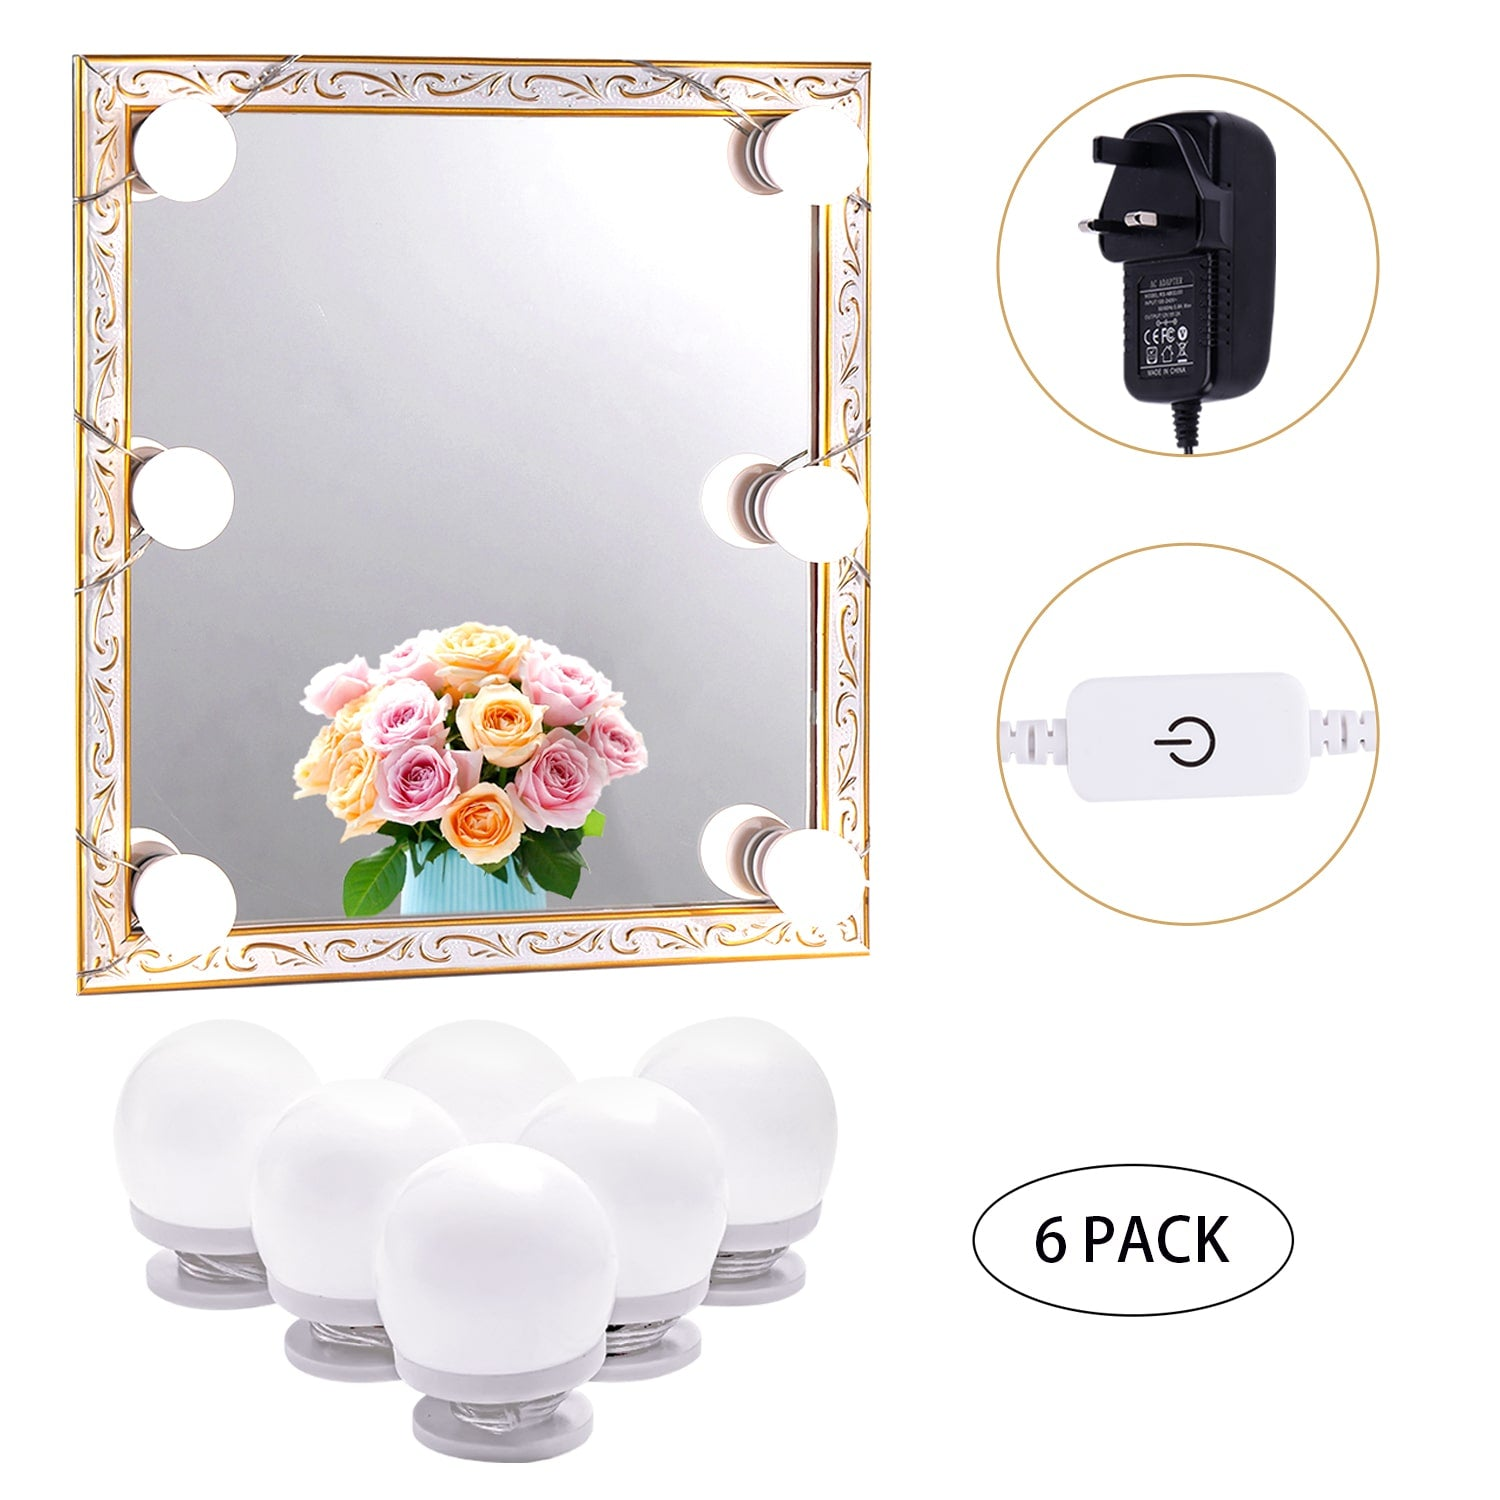 LED Makeup Mirror Lights(4000K, 6Bulbs, Plug in), Mirror Not Included